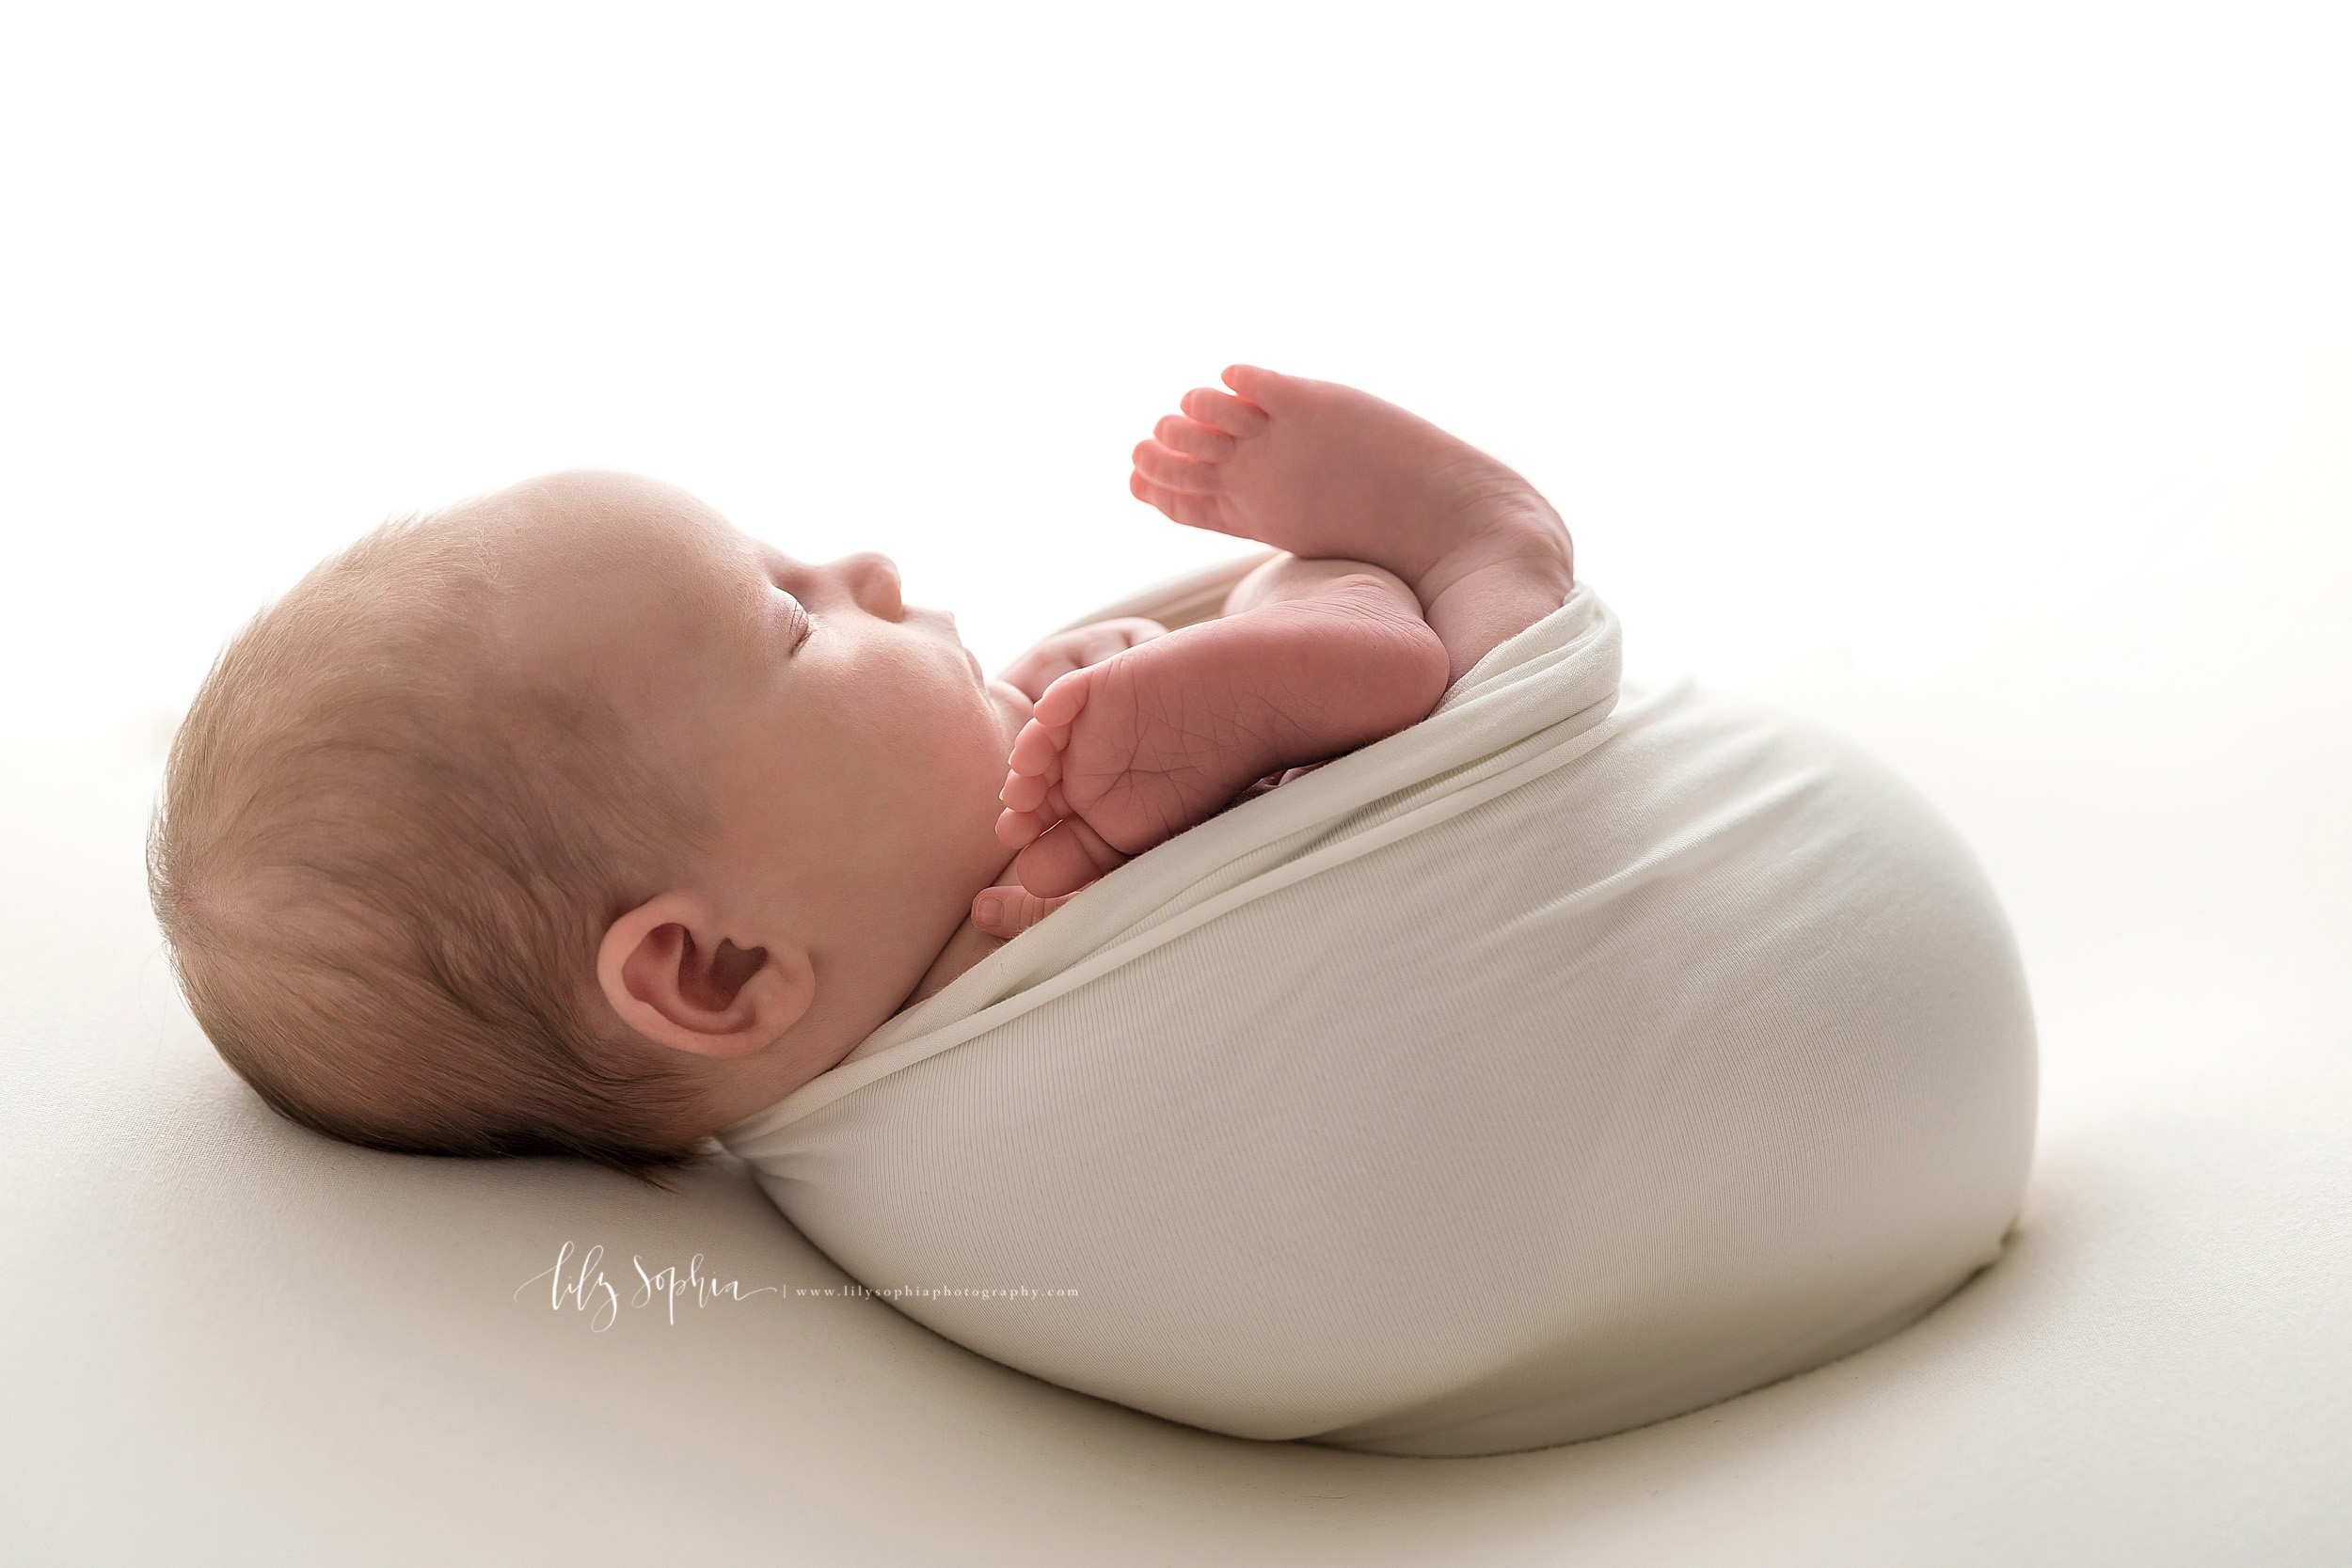 atlanta-west-end-sandy-springs-buckhead-virginia-highlands-west-end-decatur-lily-sophia-photography-studio-newborn-baby-girl-family-pictures_0992.jpg